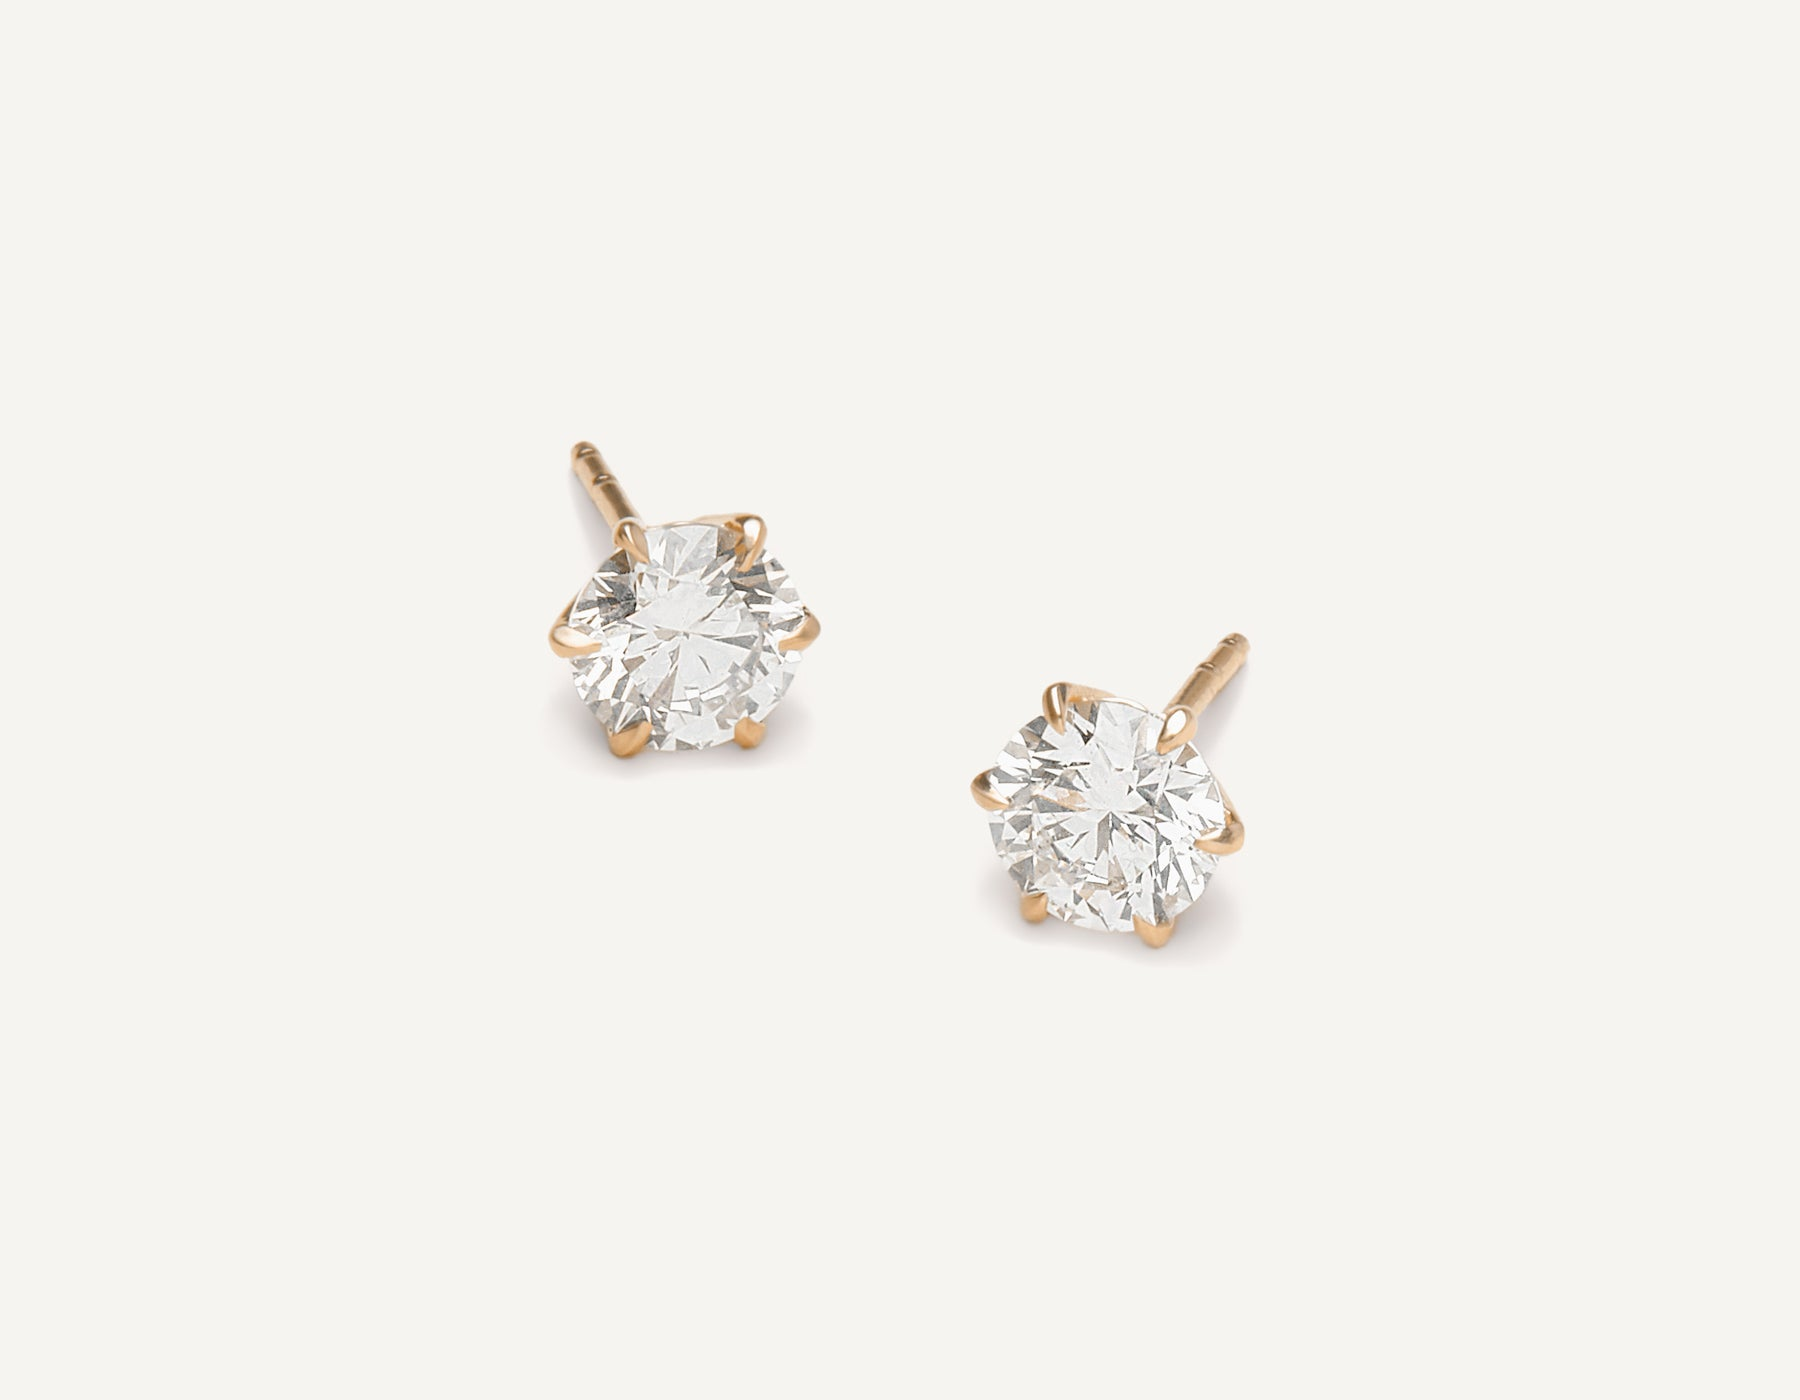 Vrai & oro 1.0 carat Round Brilliant Diamond stud earring 18k solid gold simple modern, 18K Rose Gold